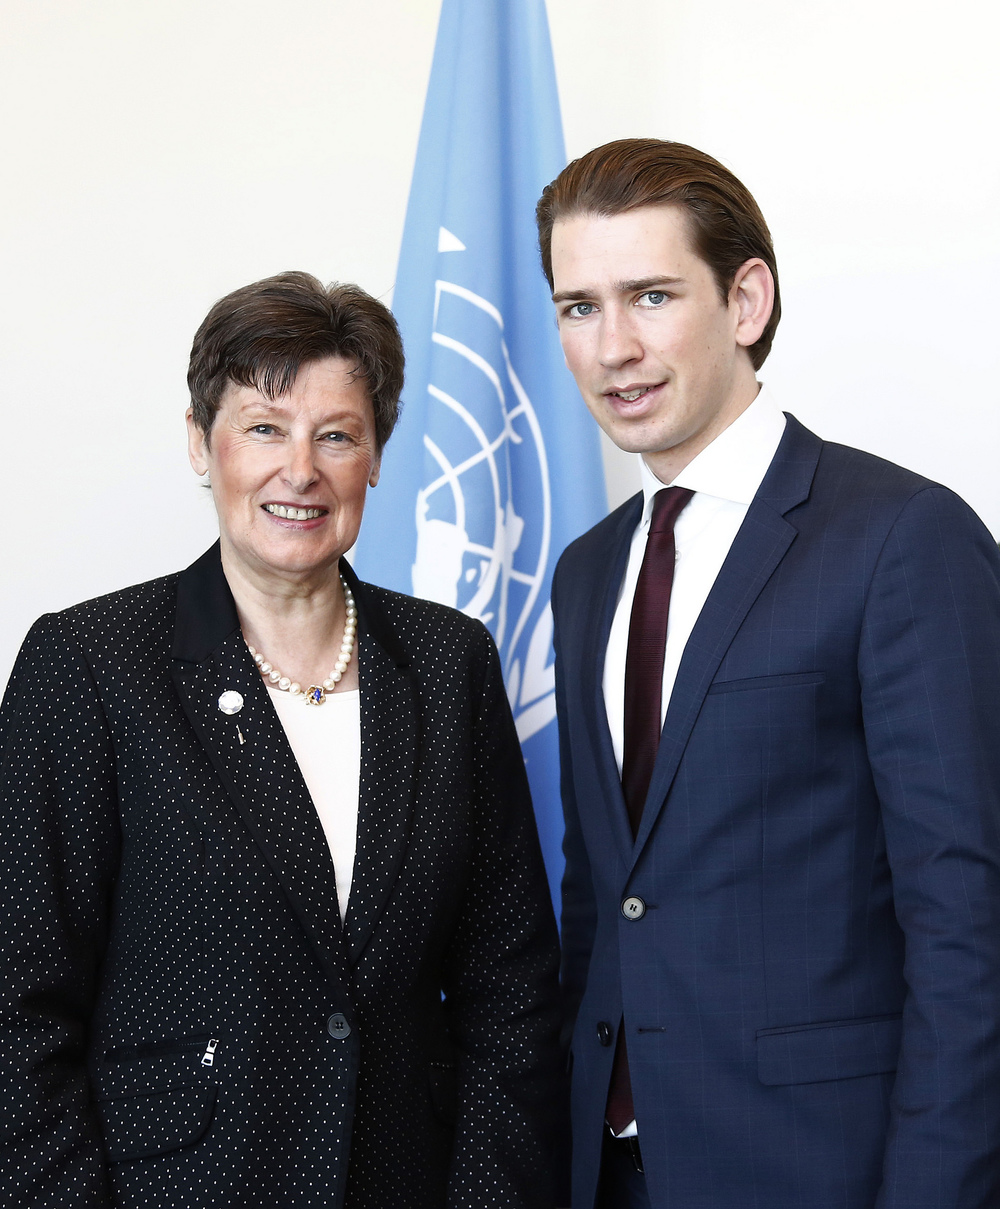 Foreign Minister Sebastian Kurz meets Angela Kane, High Representative of Disarmament,  Review   Conference of the Non-Proliferation Treaty (NPT) at the United Nations. Photo: Dragan Tatic.